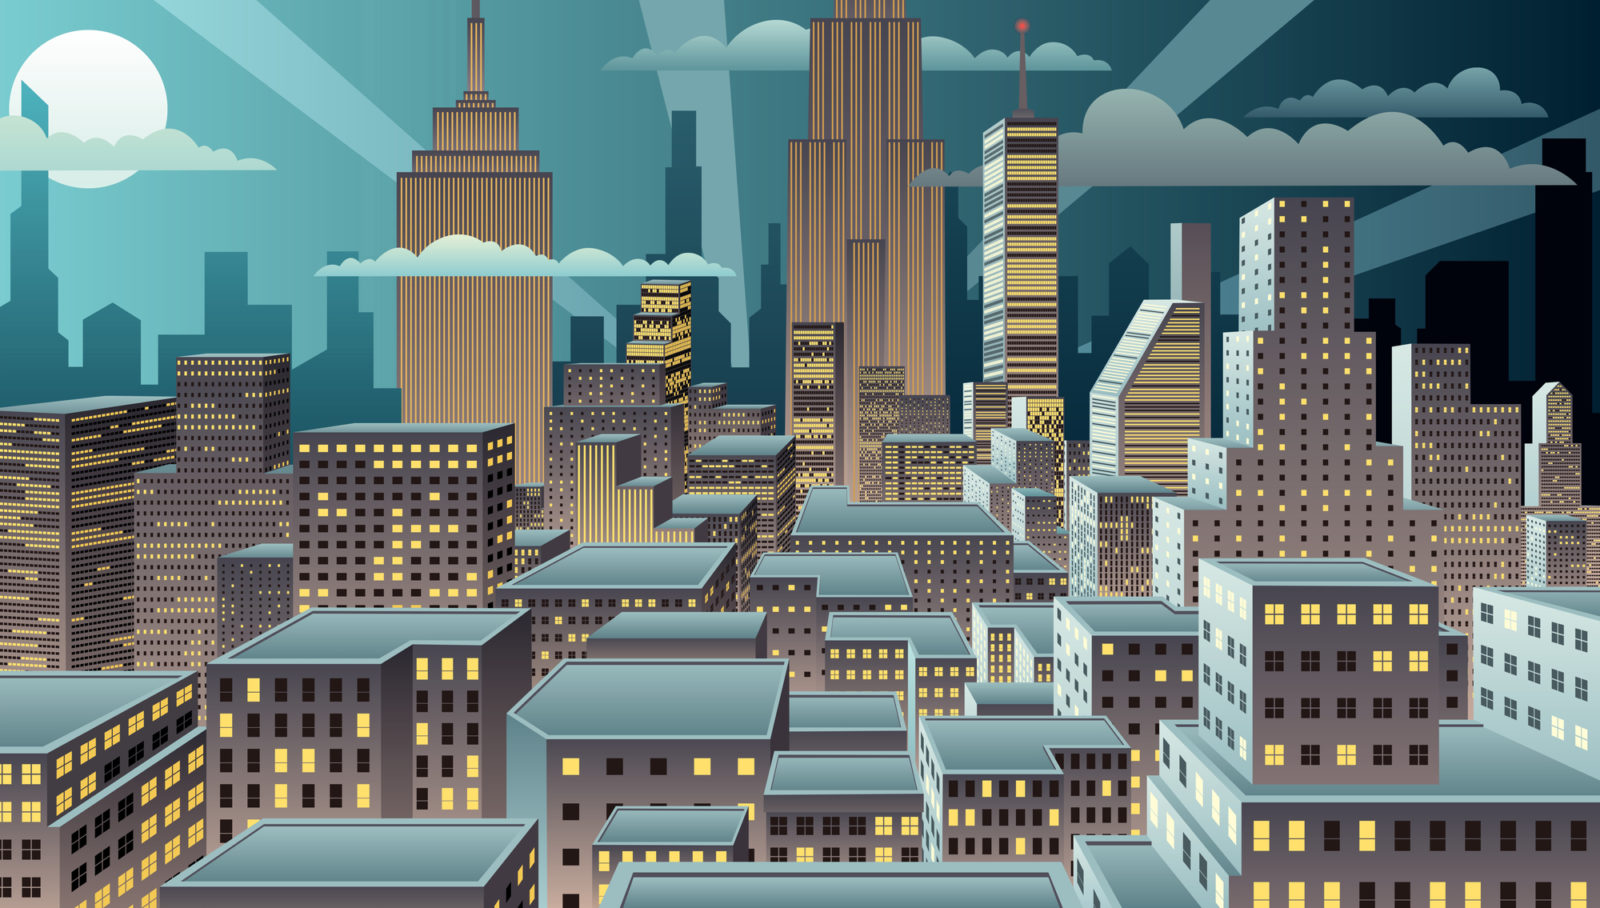 comic book city skyline